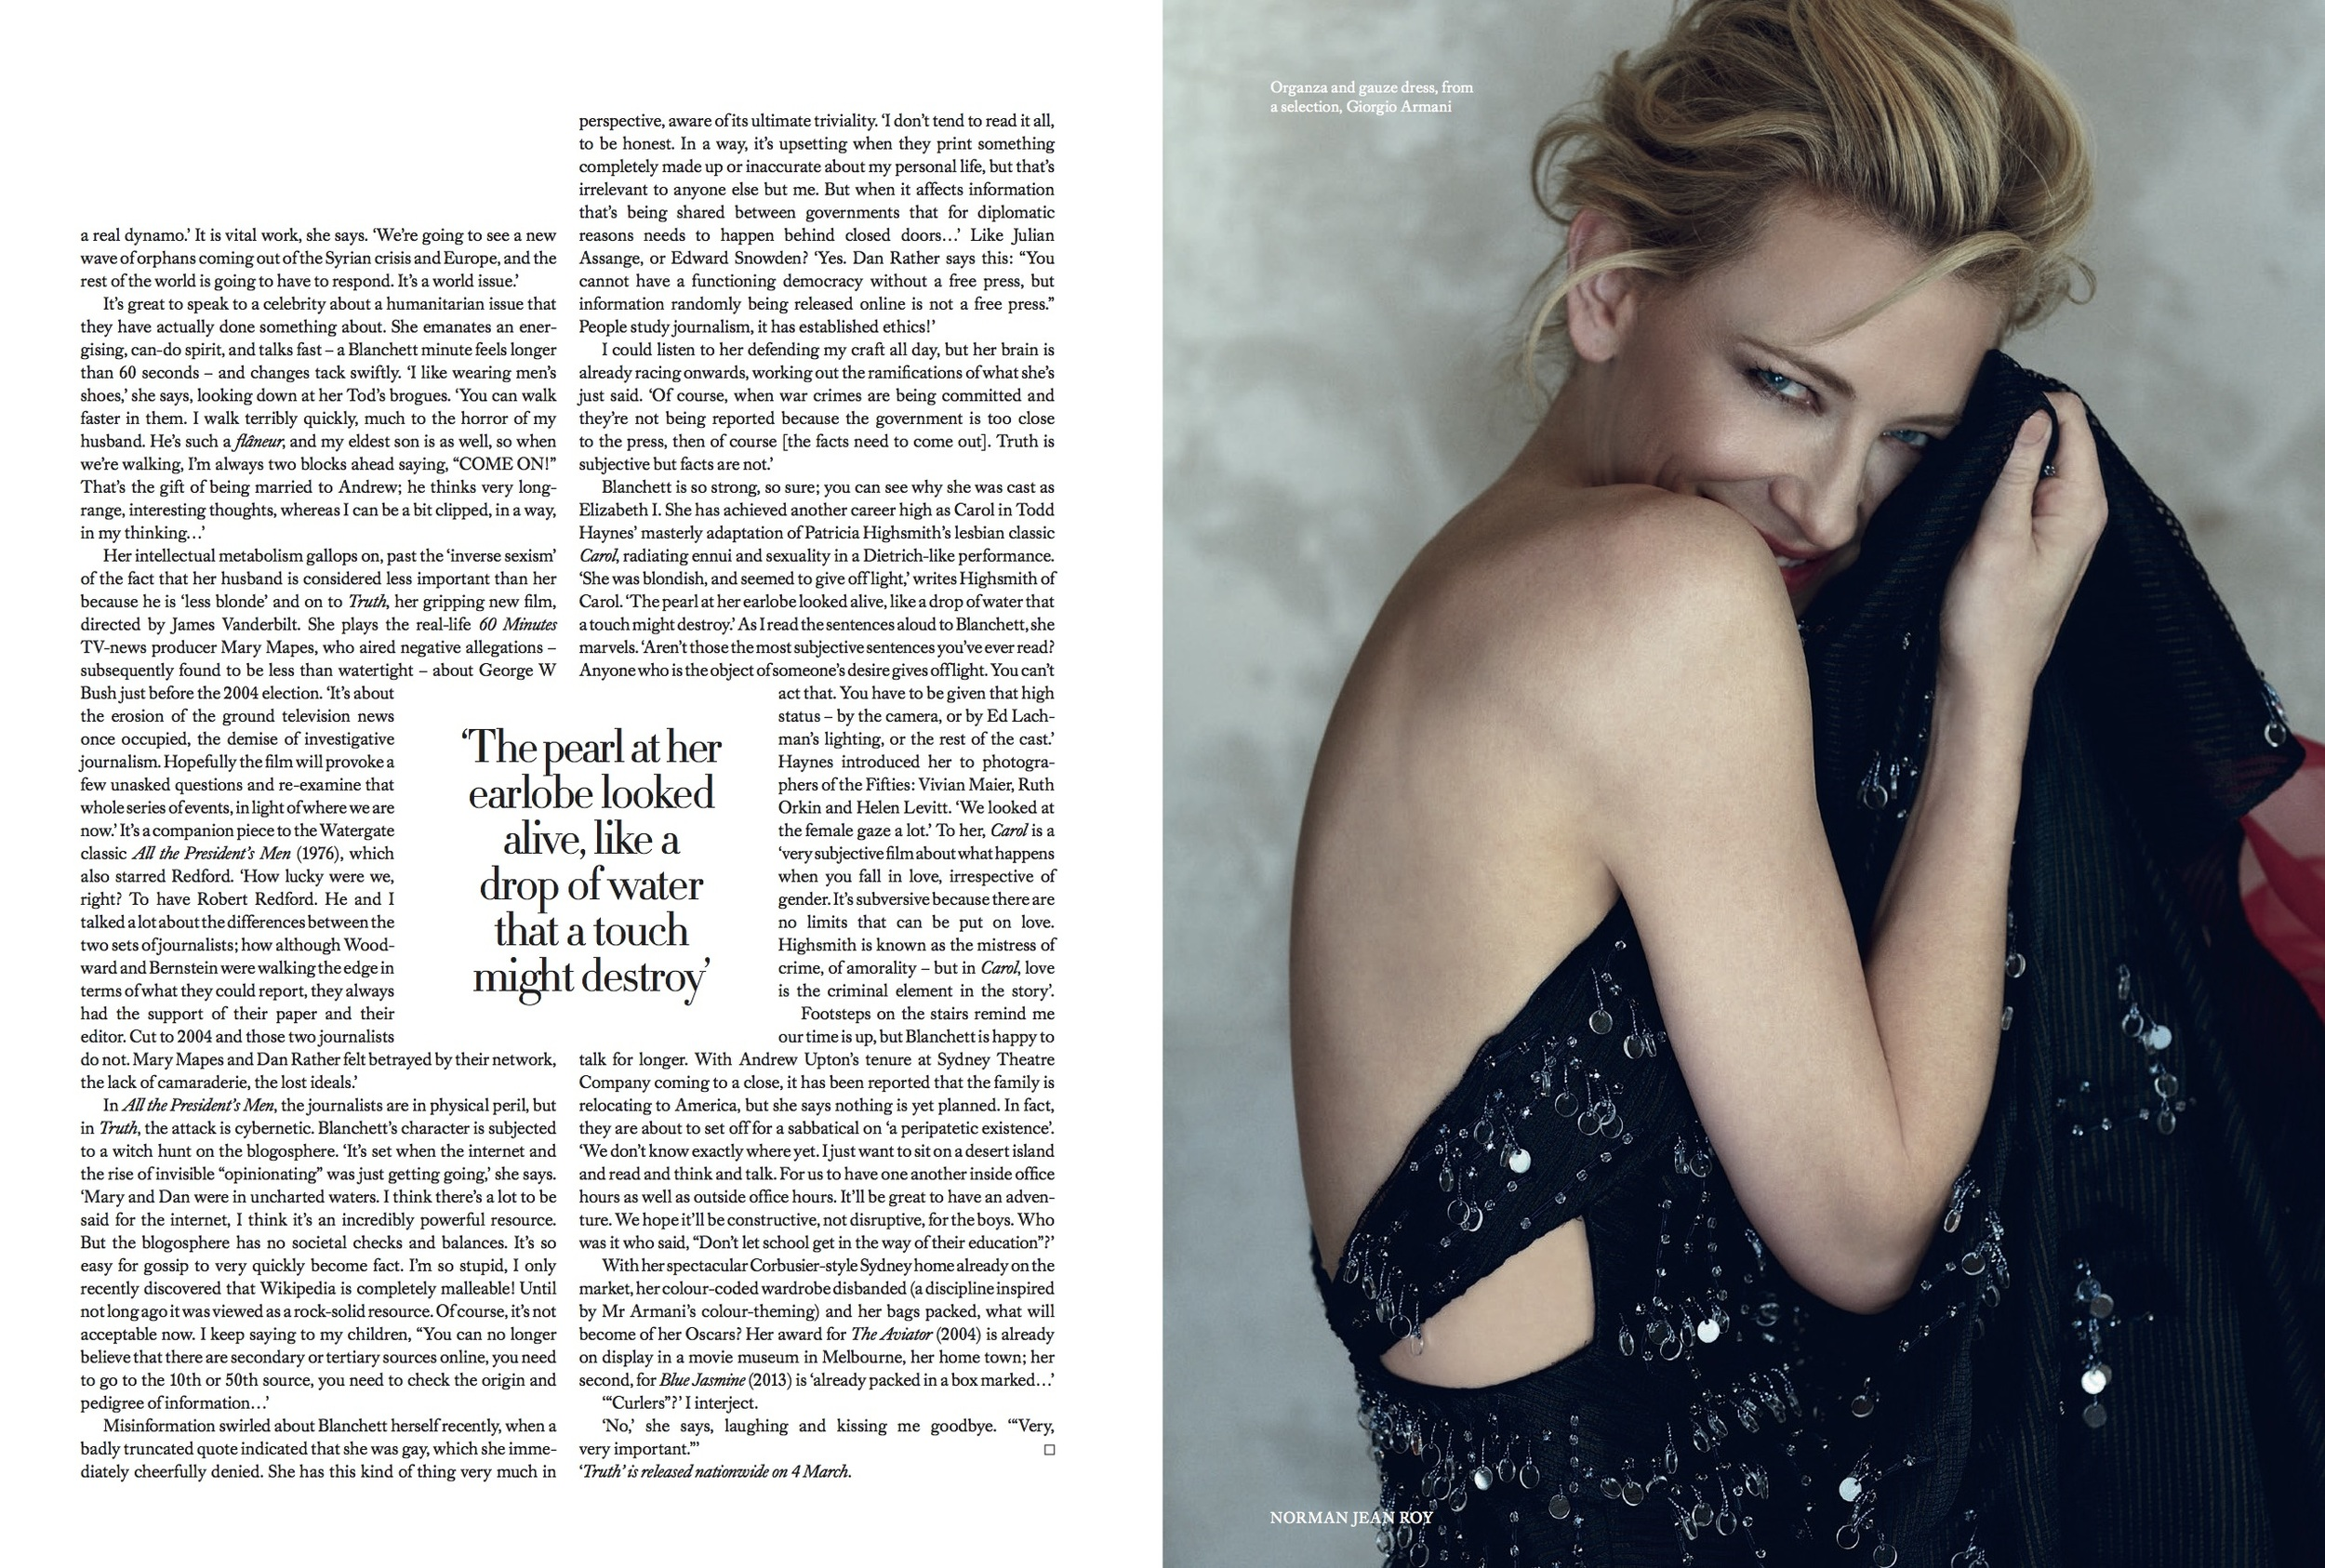 Cate Blanchett Cover Story for Harper's Bazaar, styled by Charlie Harrington. Spread 4.